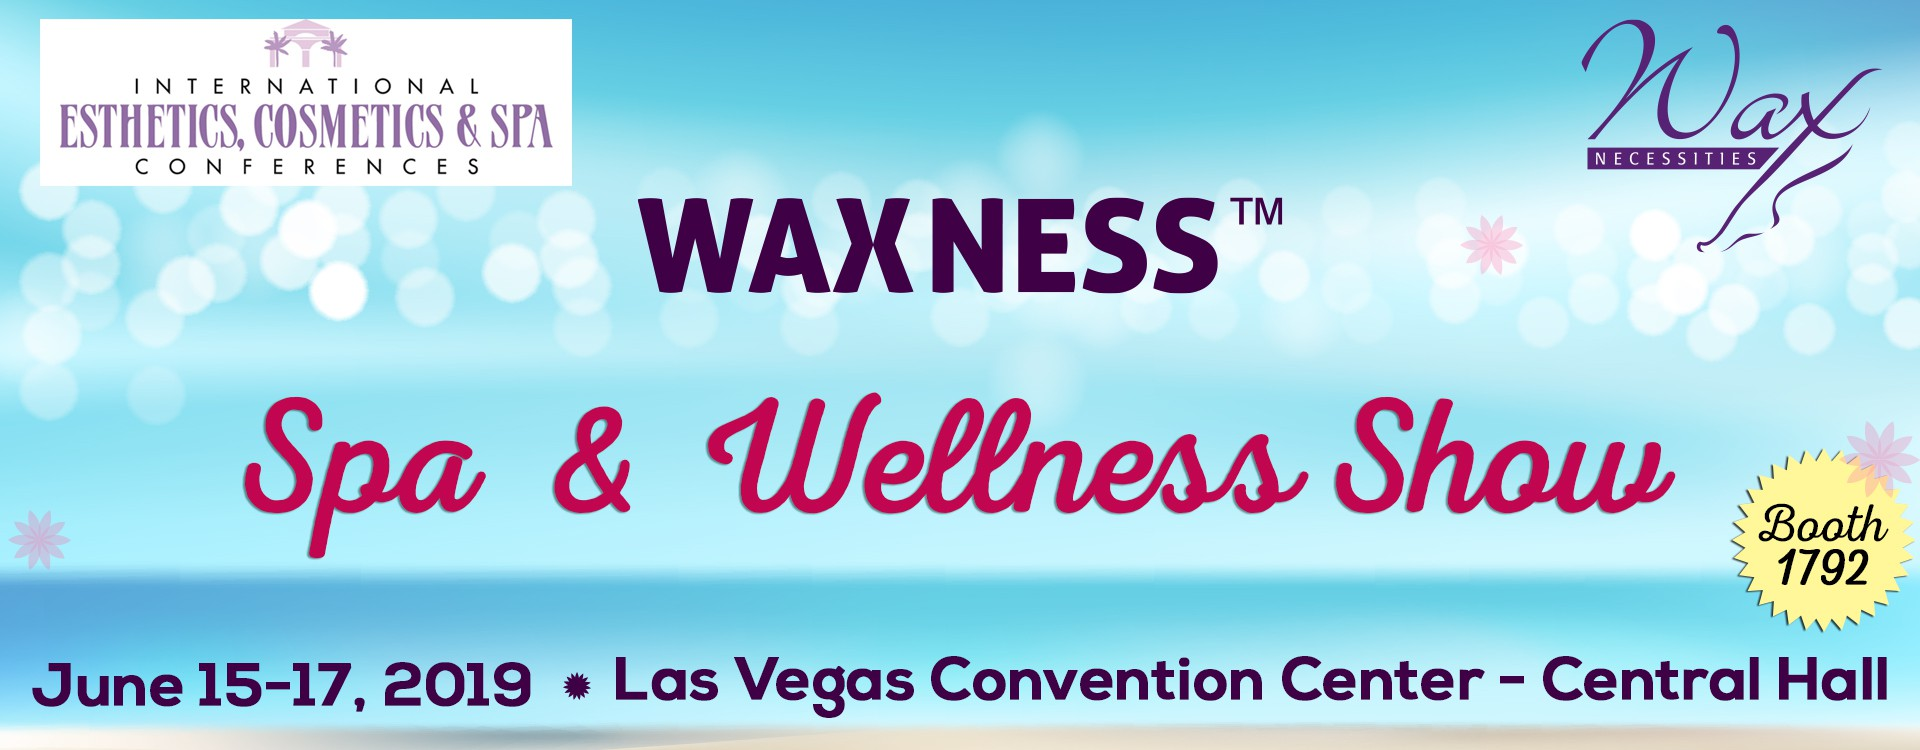 Spa and Wellness Show in Las Vegas, June 15-17, Booth 1792!